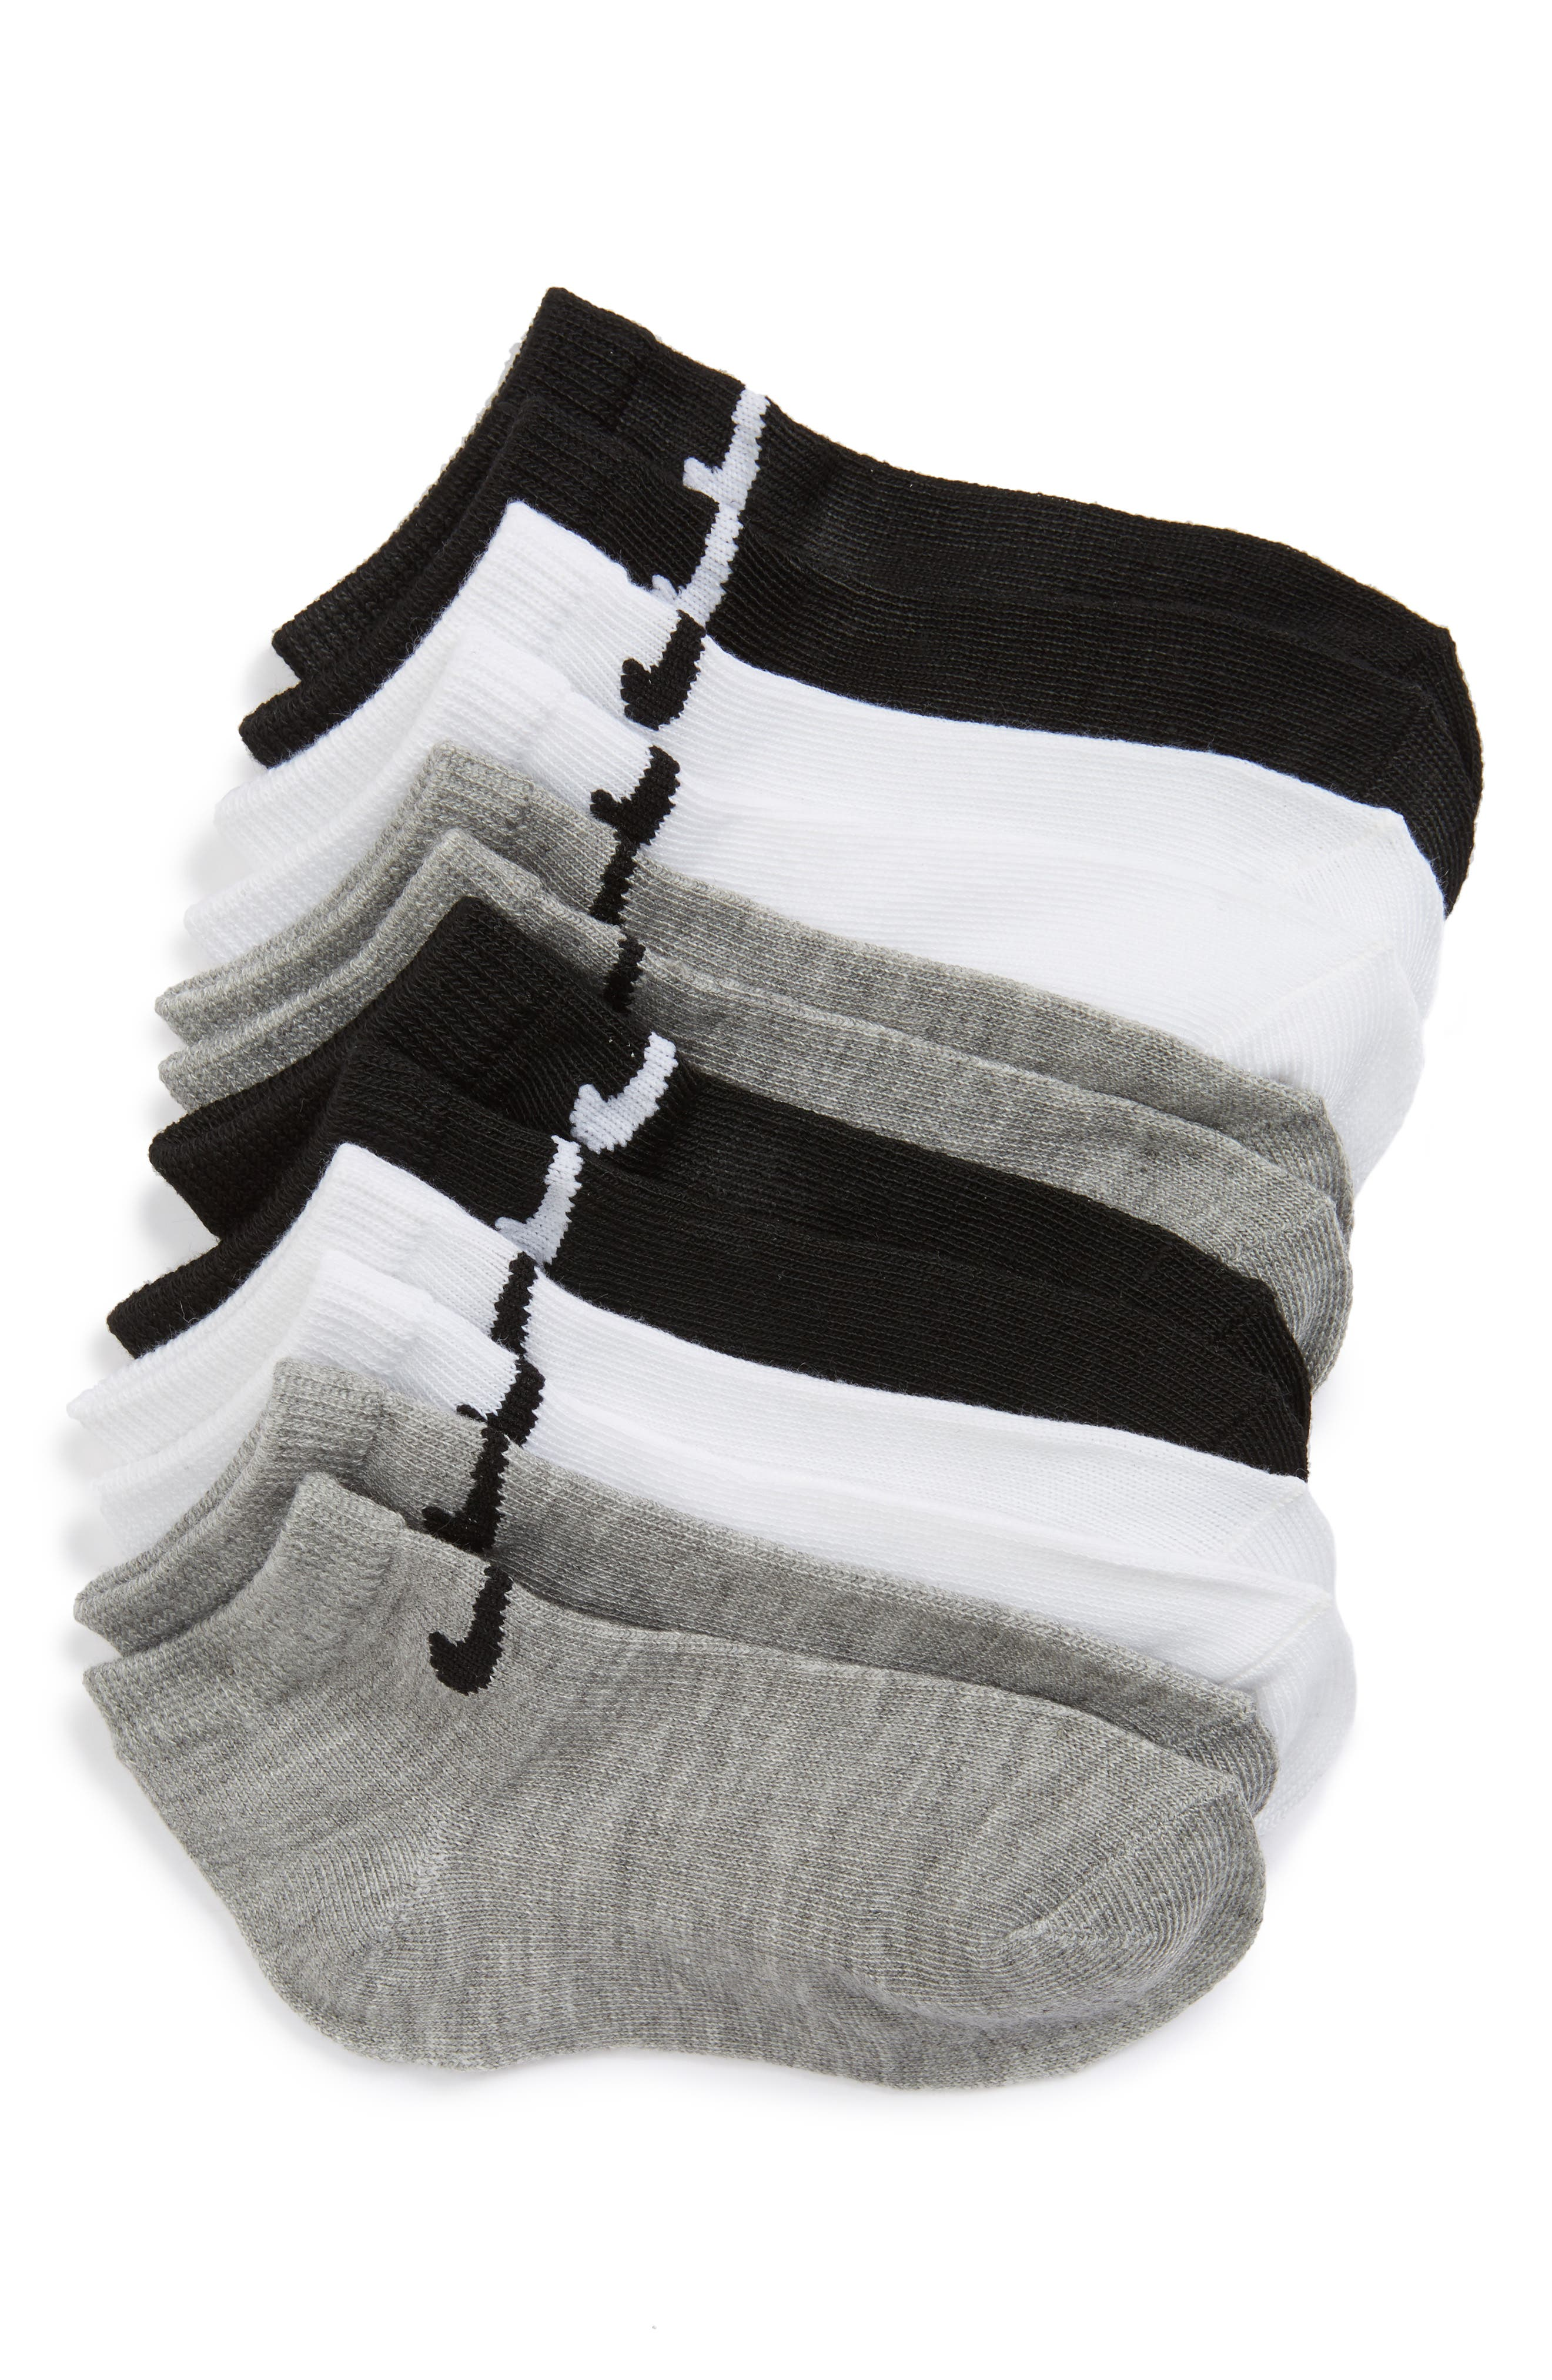 Low Cut Performance Socks,                             Main thumbnail 1, color,                             Vintage Heather